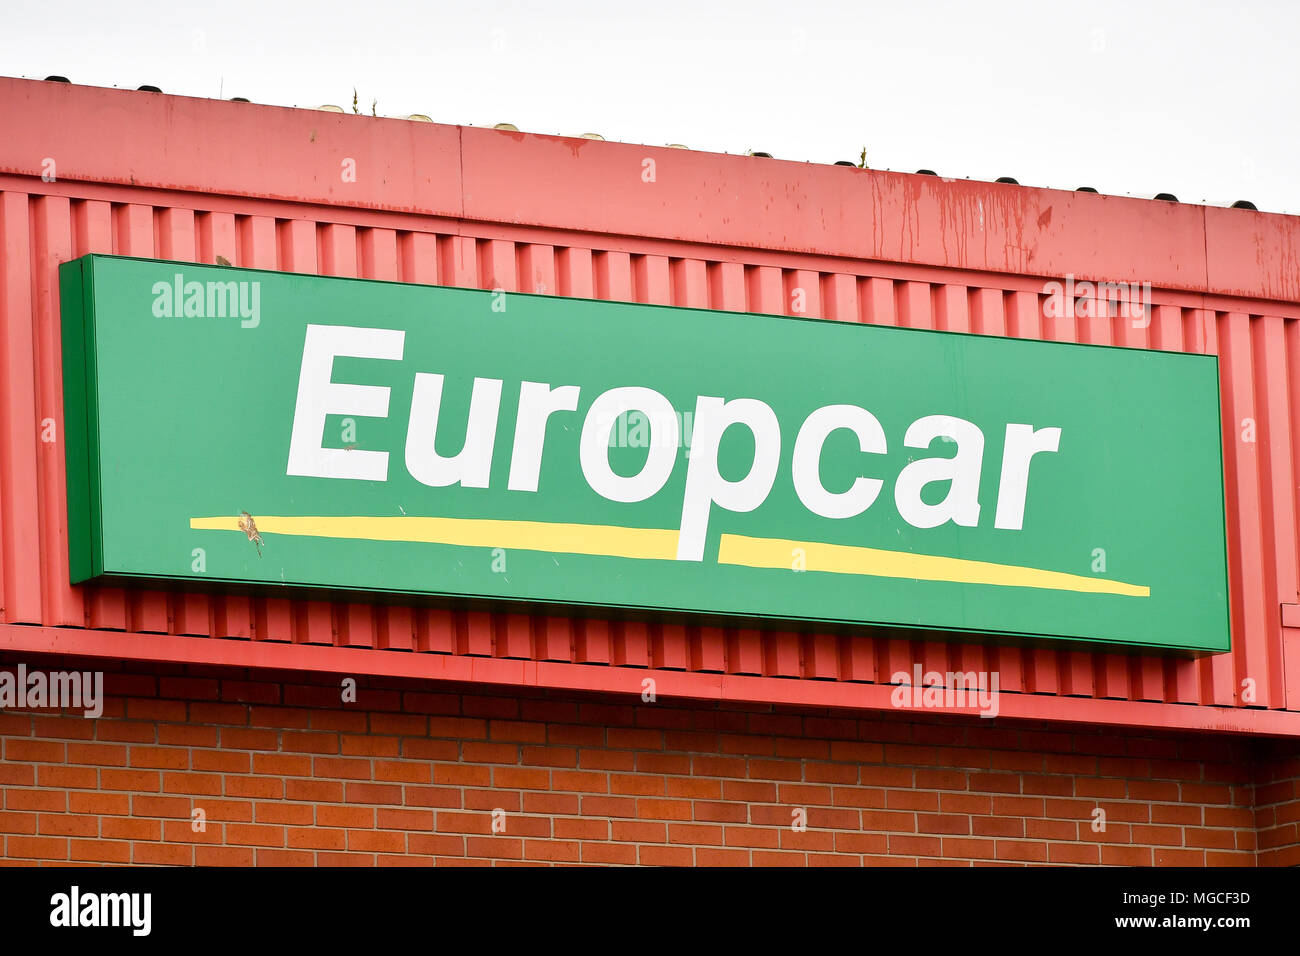 Europcar Car Hire Stock Photos Europcar Car Hire Stock Images Alamy